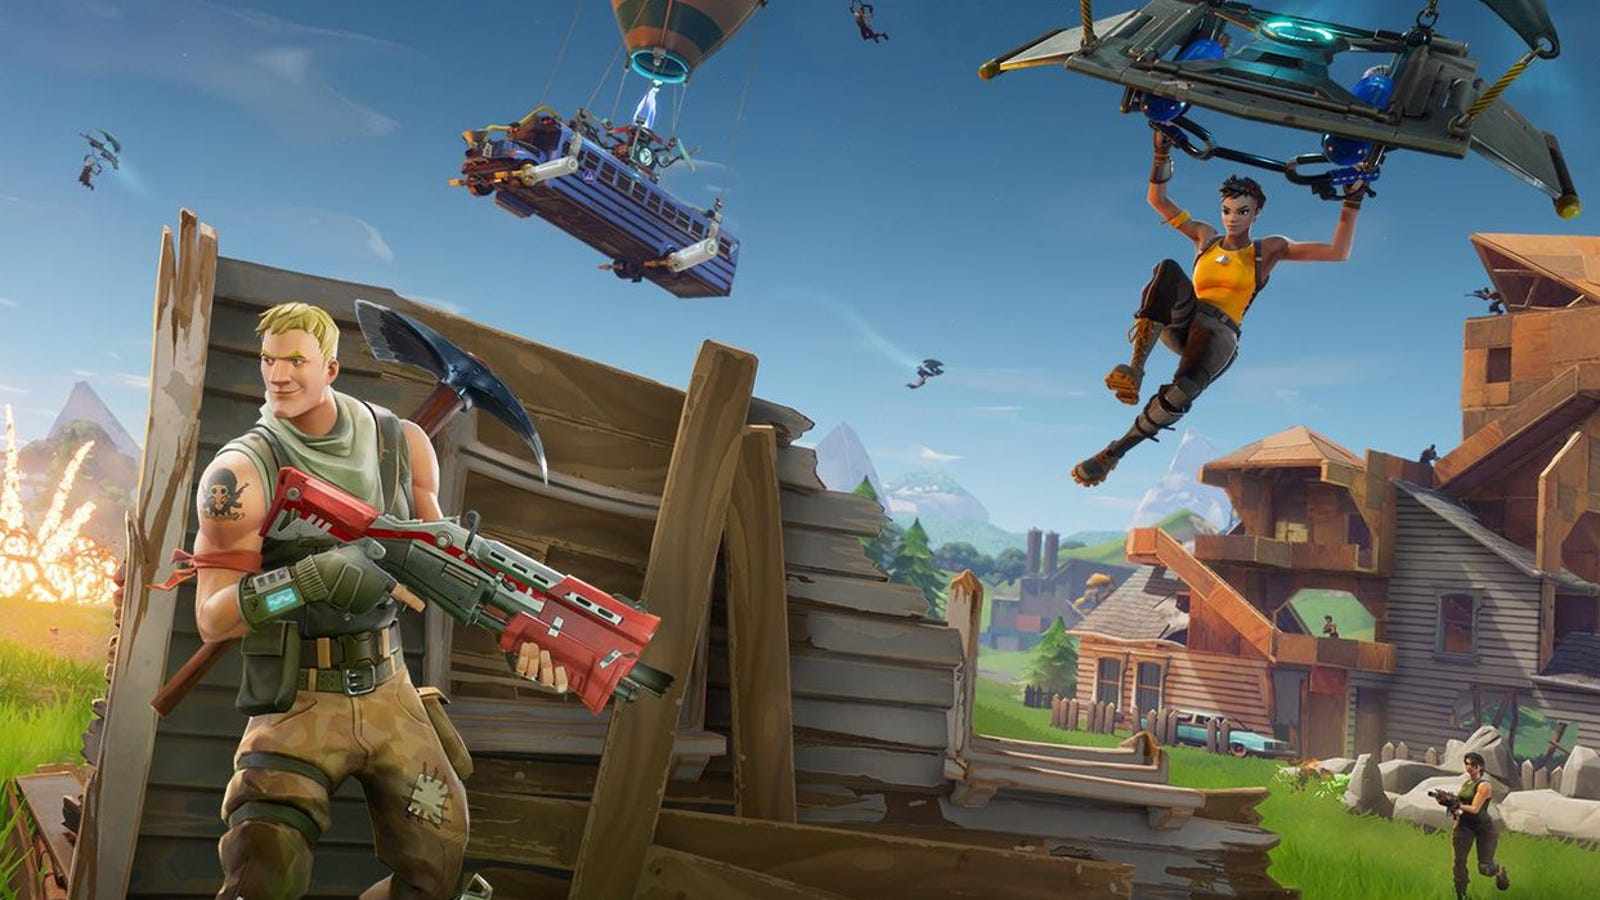 epic bans stretched screen resolutions from fortnite tournaments upsetting pros - fortnite fov change ban